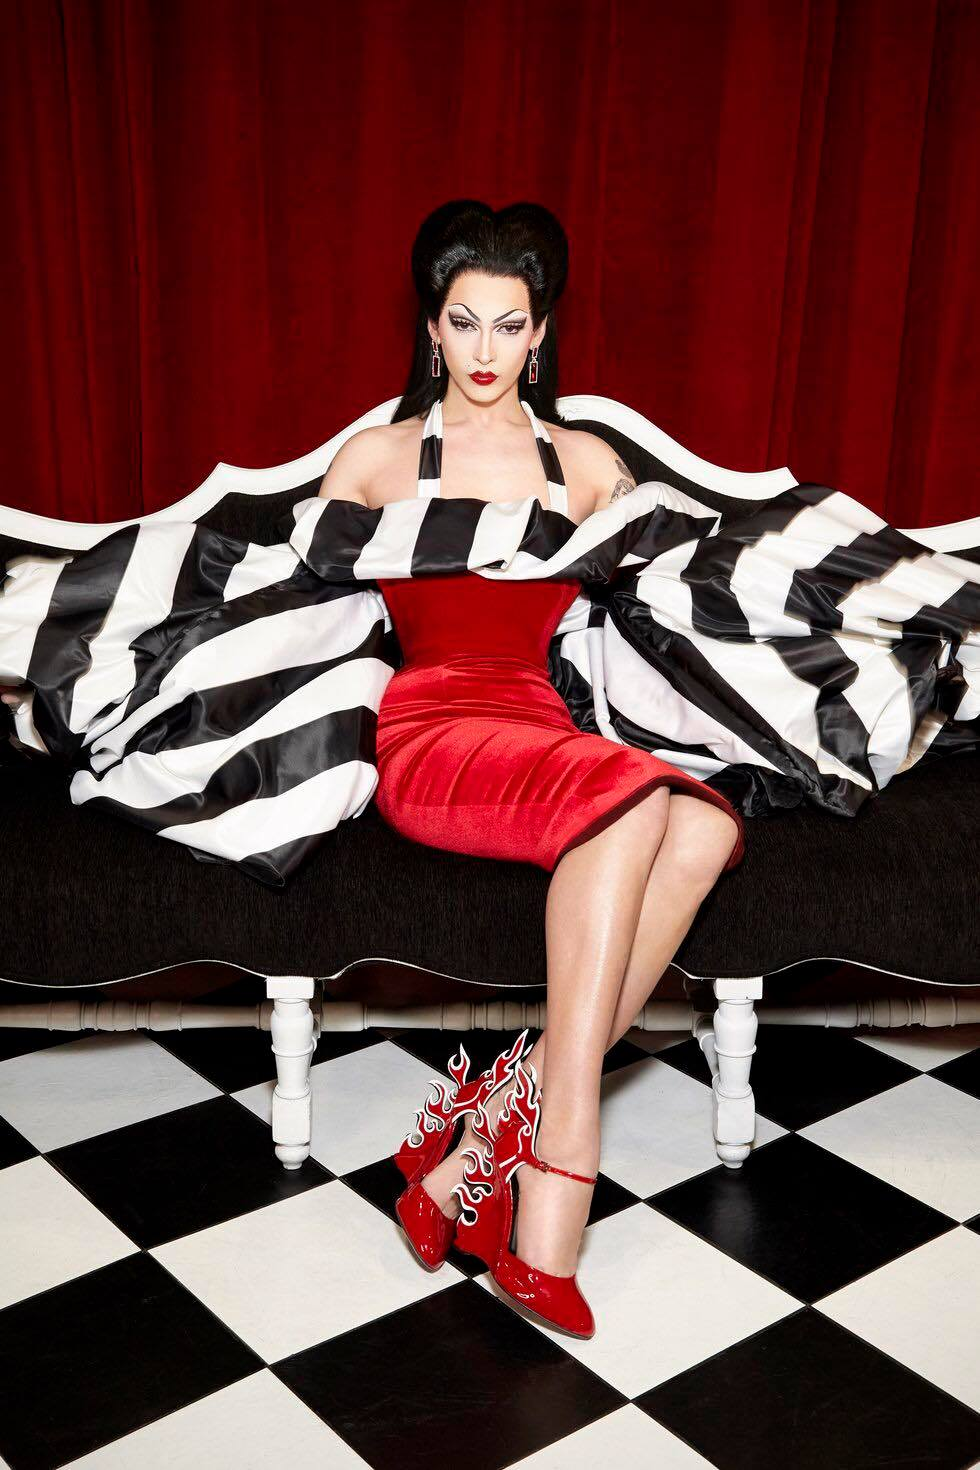 Violet Chachki - Photo by Albert Sanchez and Pedro Zalba